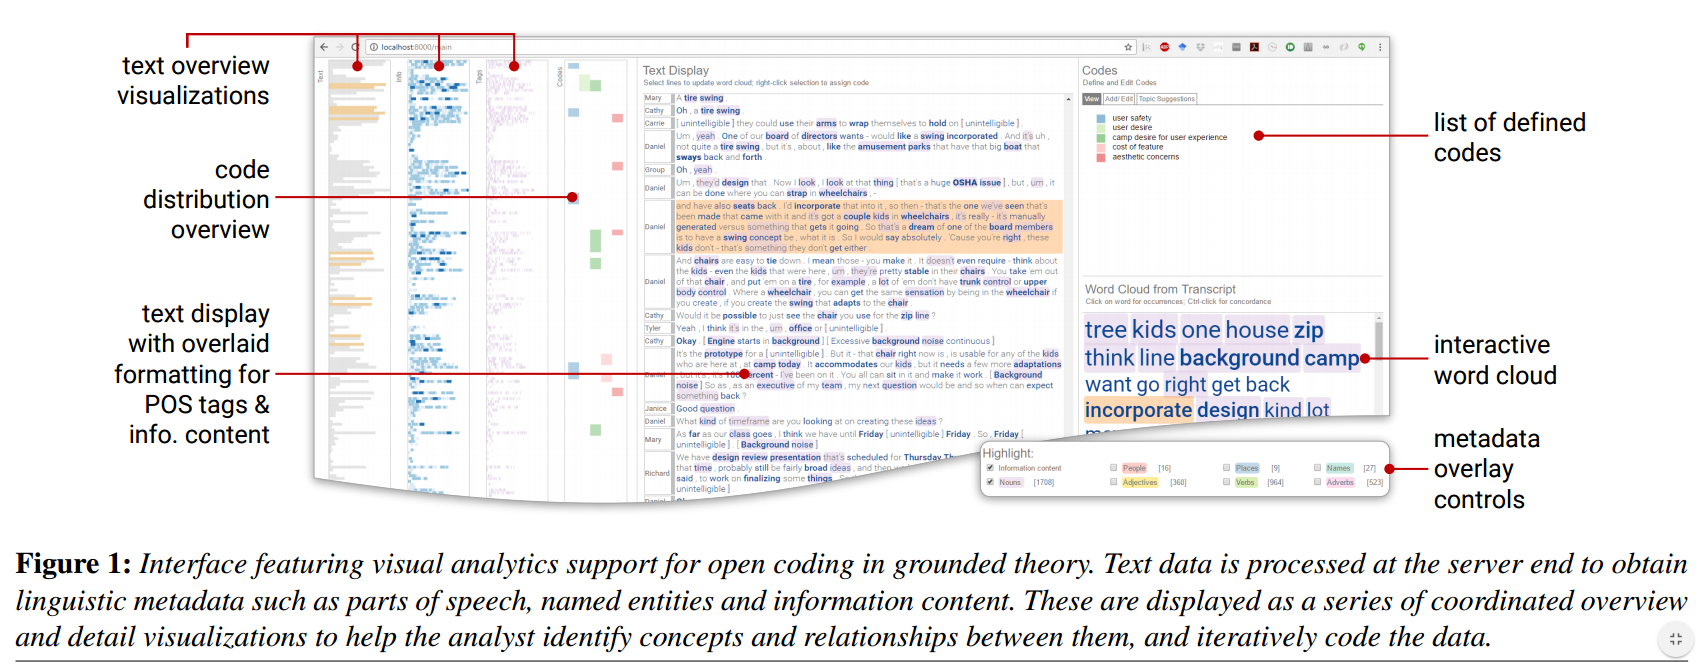 Integrating Visual Analytics Support for Grounded Theory Practice in Qualitative Text Analysis